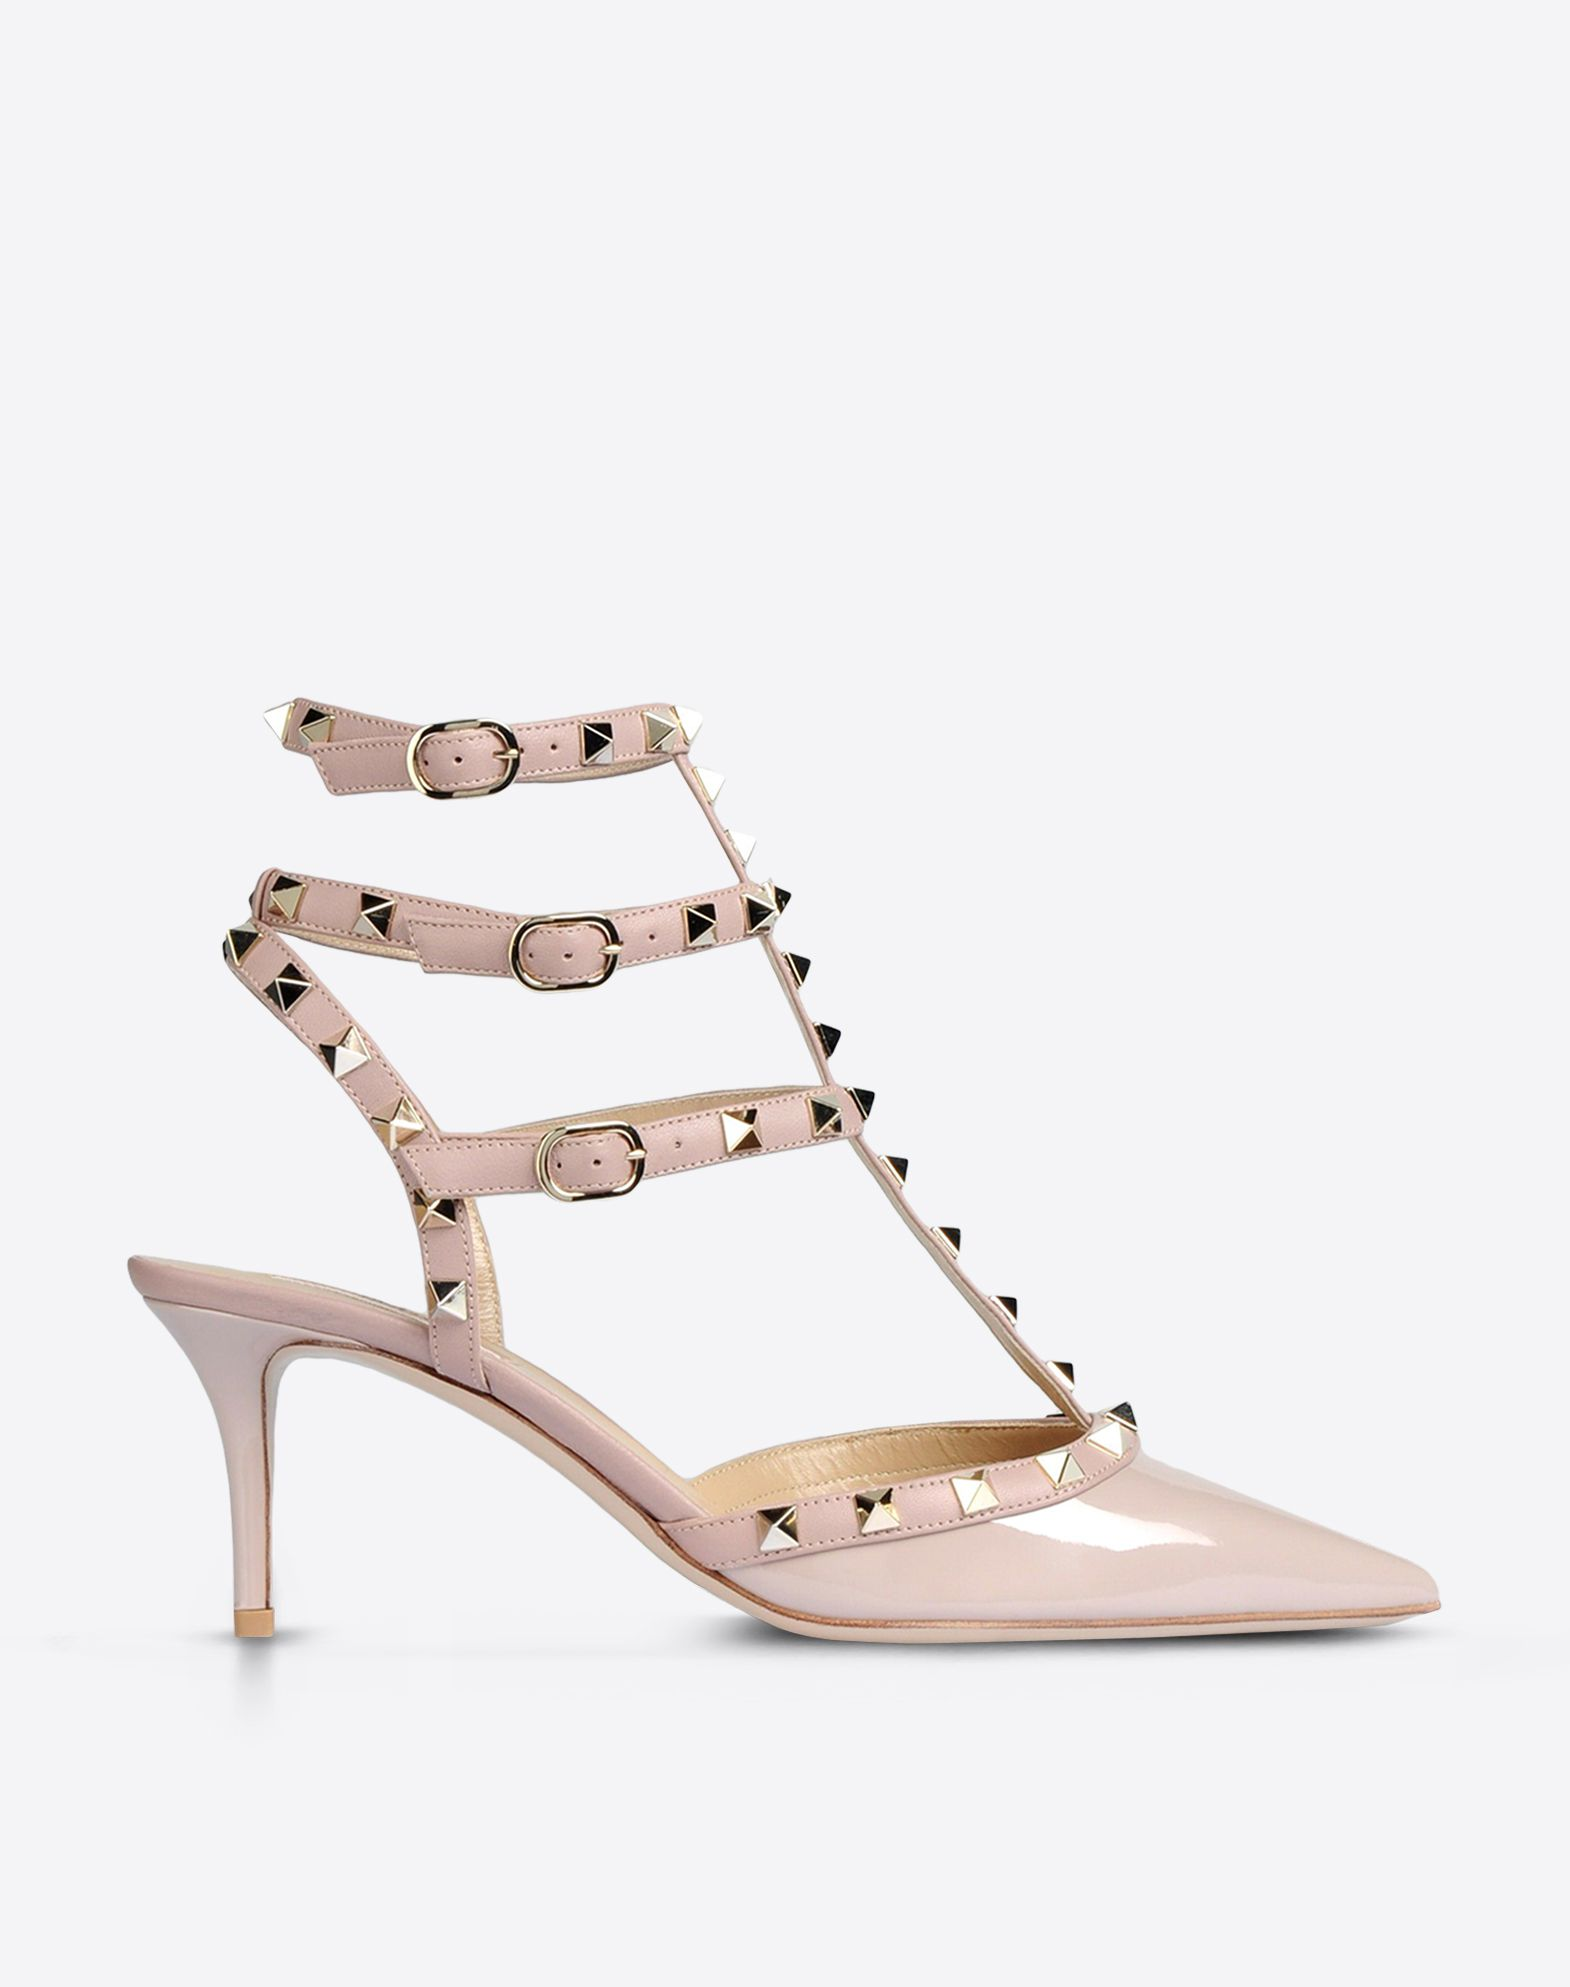 Valentino Garavani The Rockstud Patent-leather Pumps - Beige Valentino